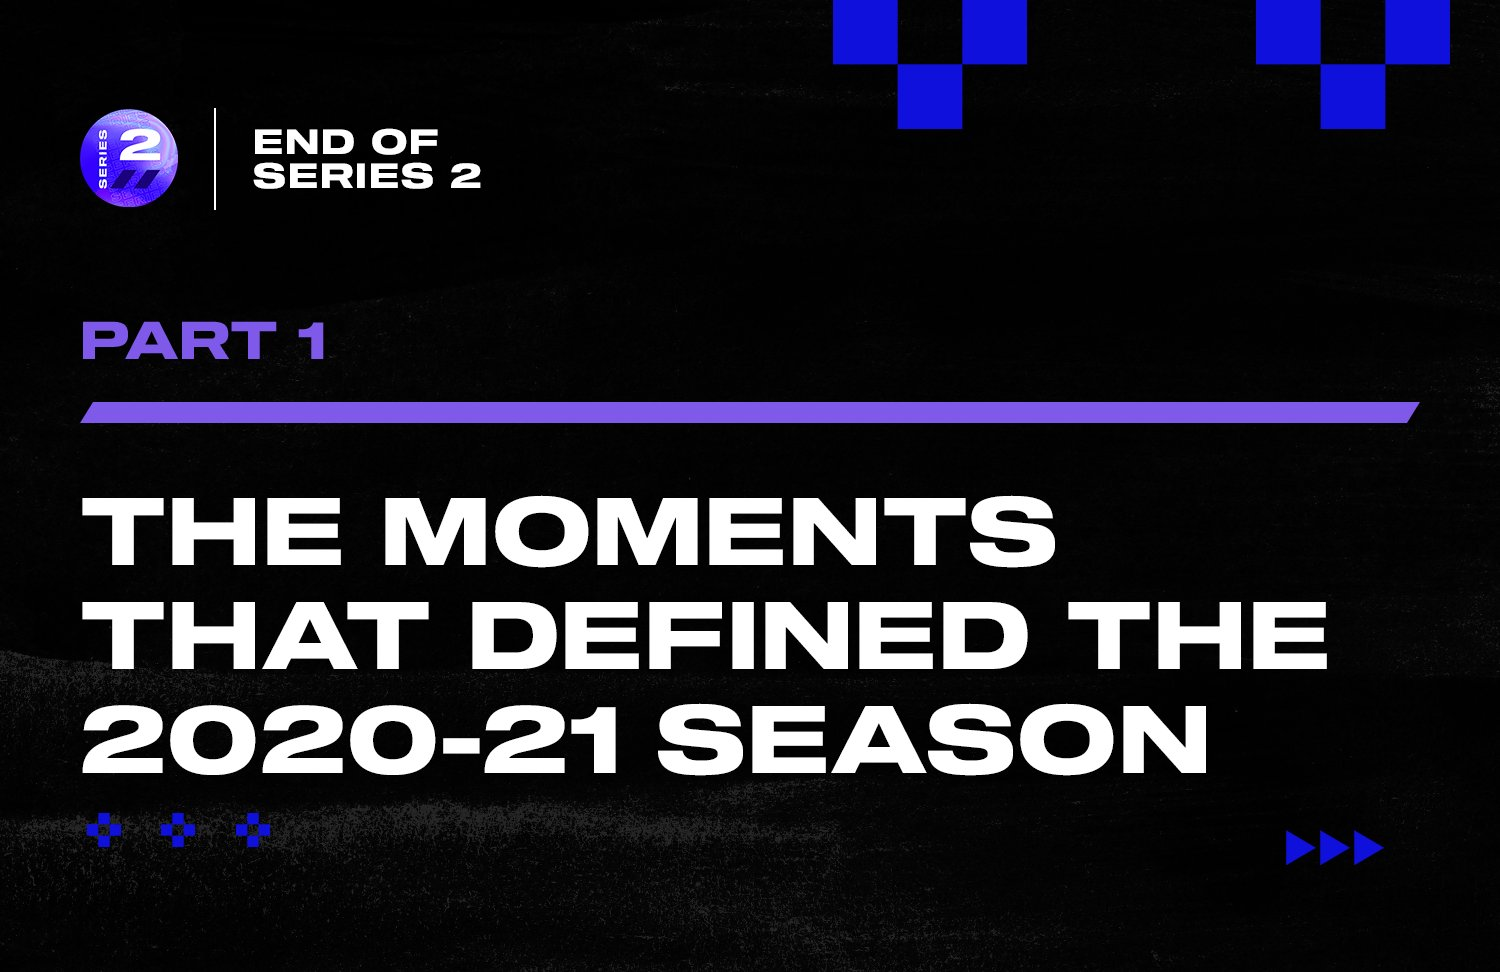 Collectors share their favorite Moments from Series 2!